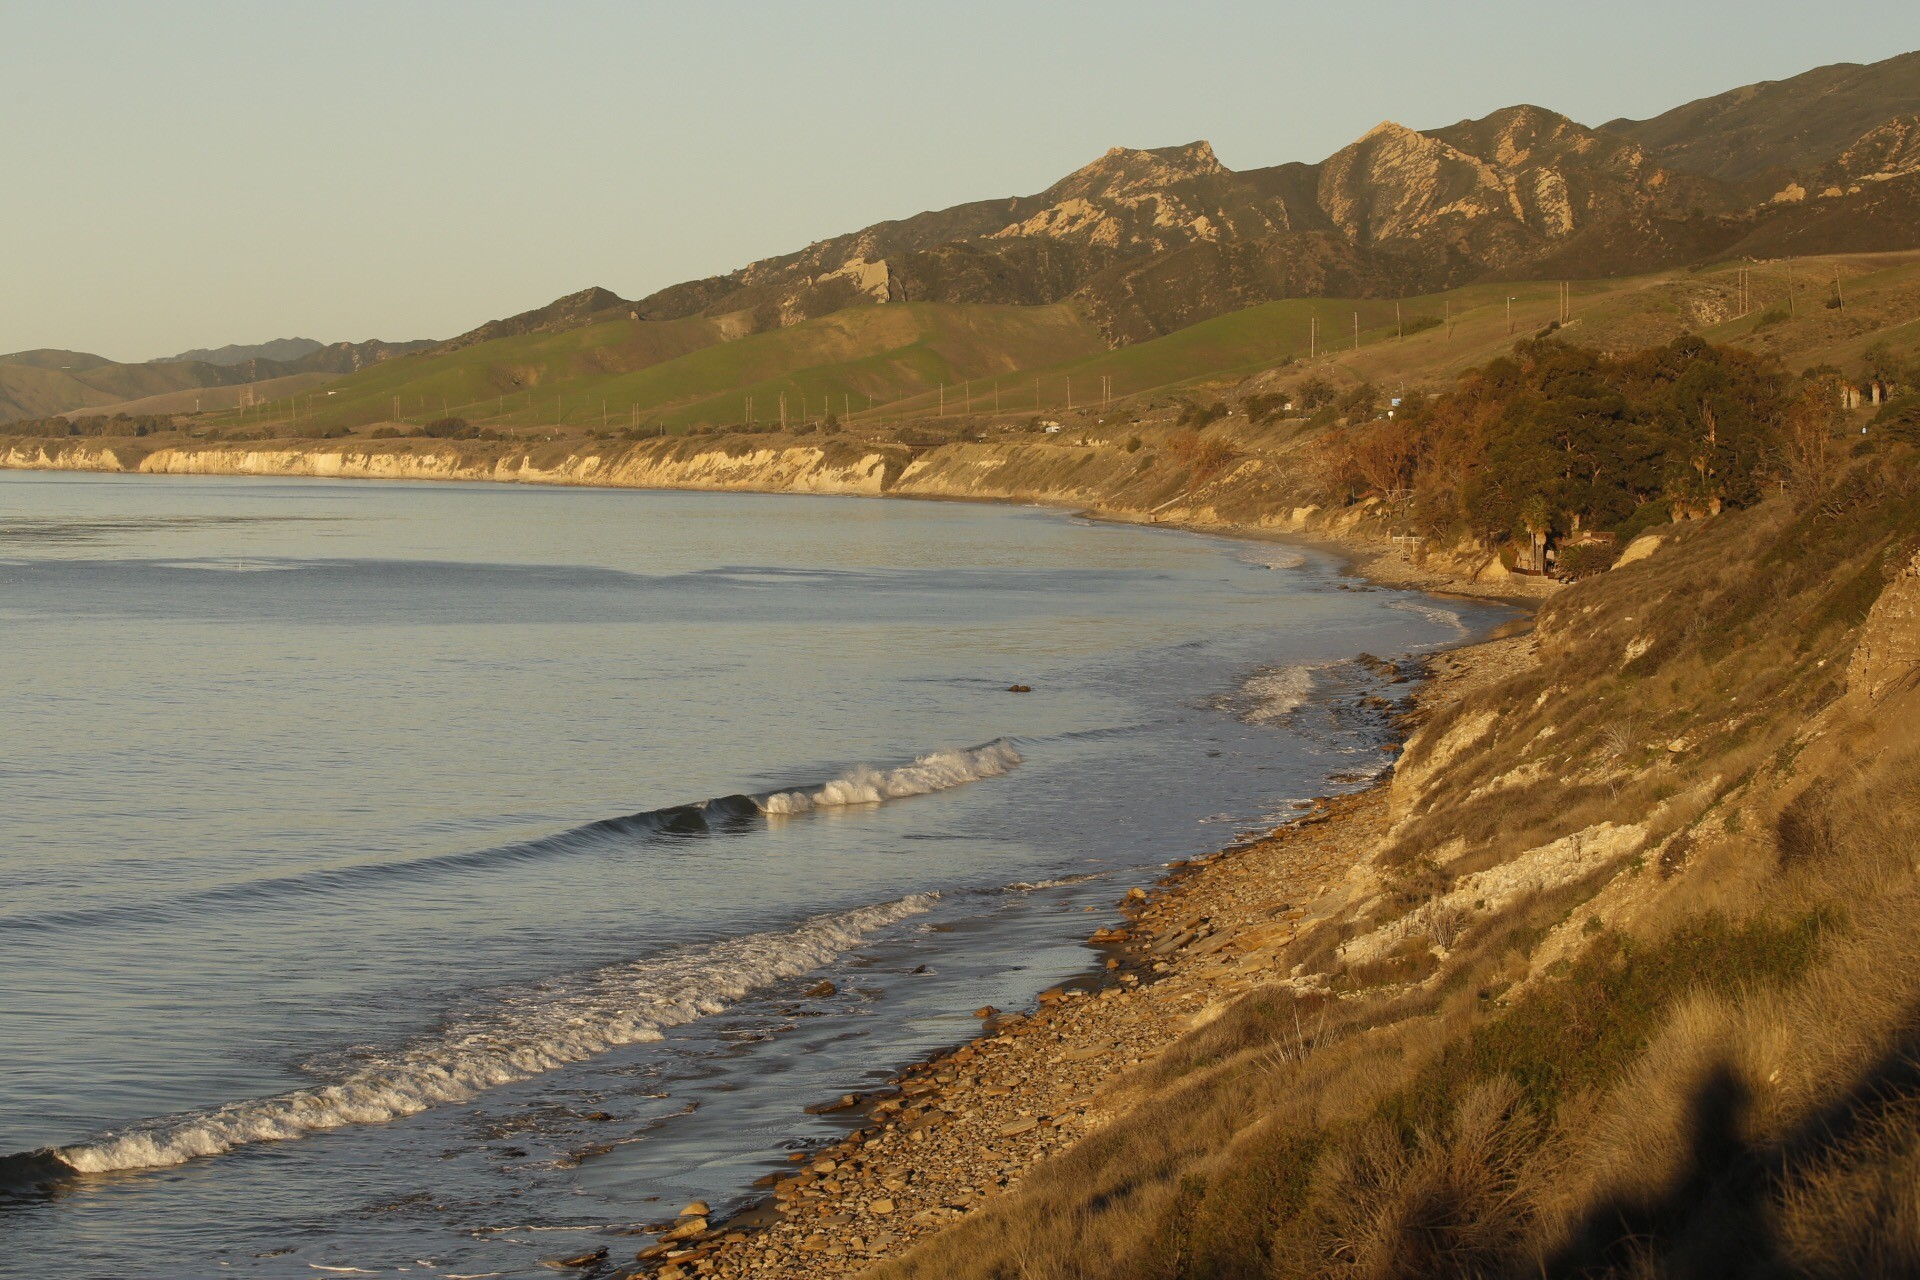 Sunrise on the Gaviota Coast north of Santa Barbara on Feb. 10, 2016.